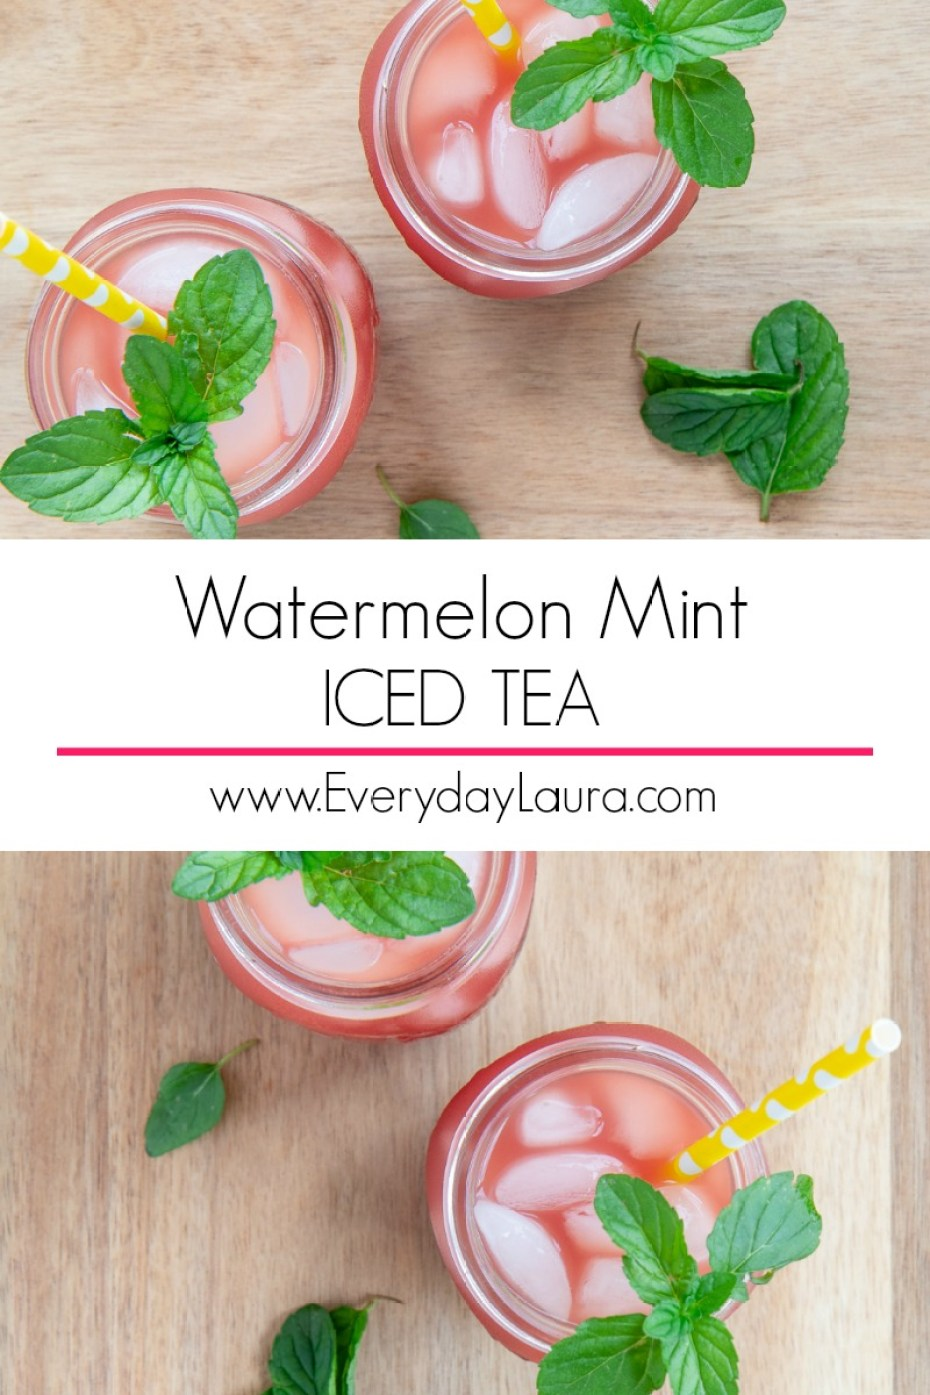 How to make watermelon mint iced tea